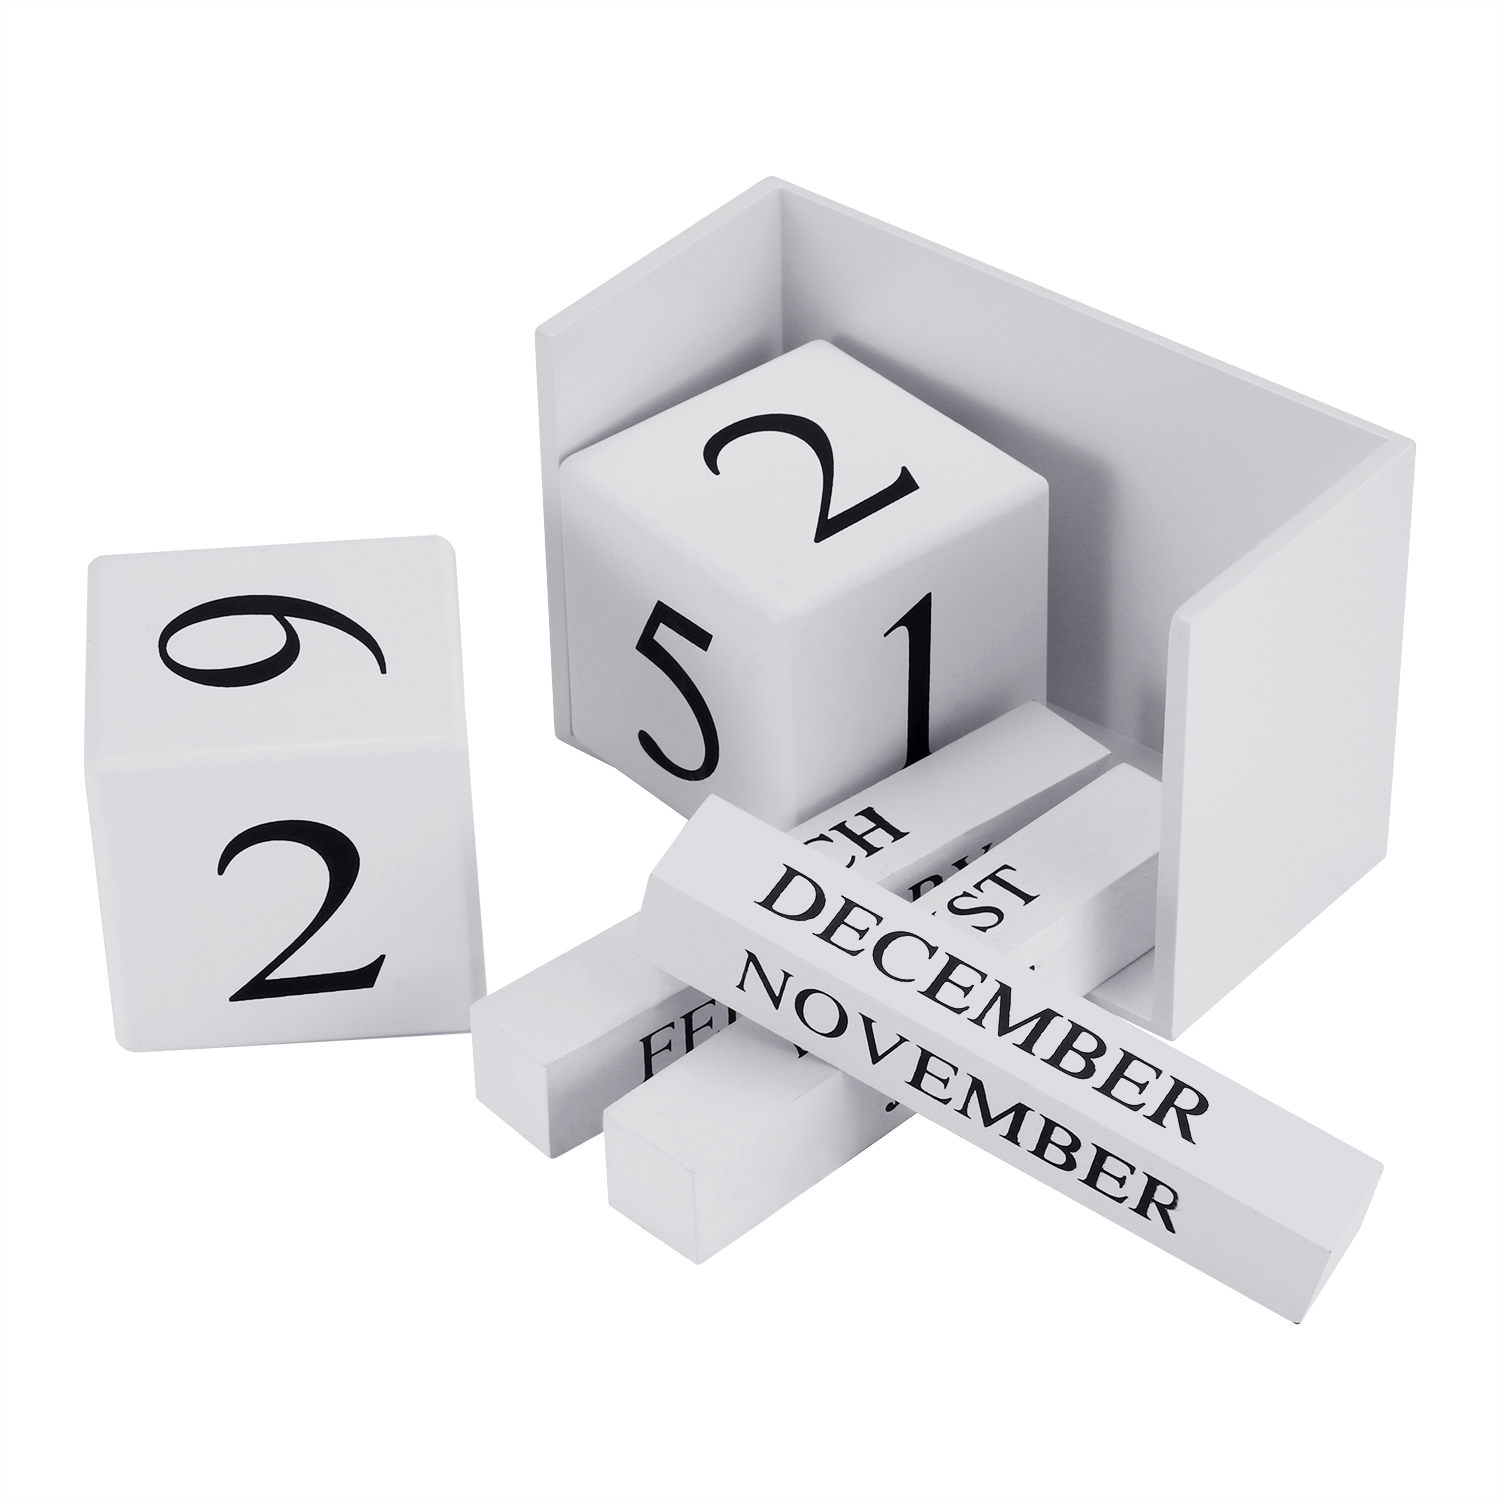 aec6e4882a53 US $9.53 41% OFF|DIY Calendar Block Wooden Perpetual Desk Calendar Western  Style Tabletop Calendar-in Decorative Letters & Numbers from Home & Garden  ...